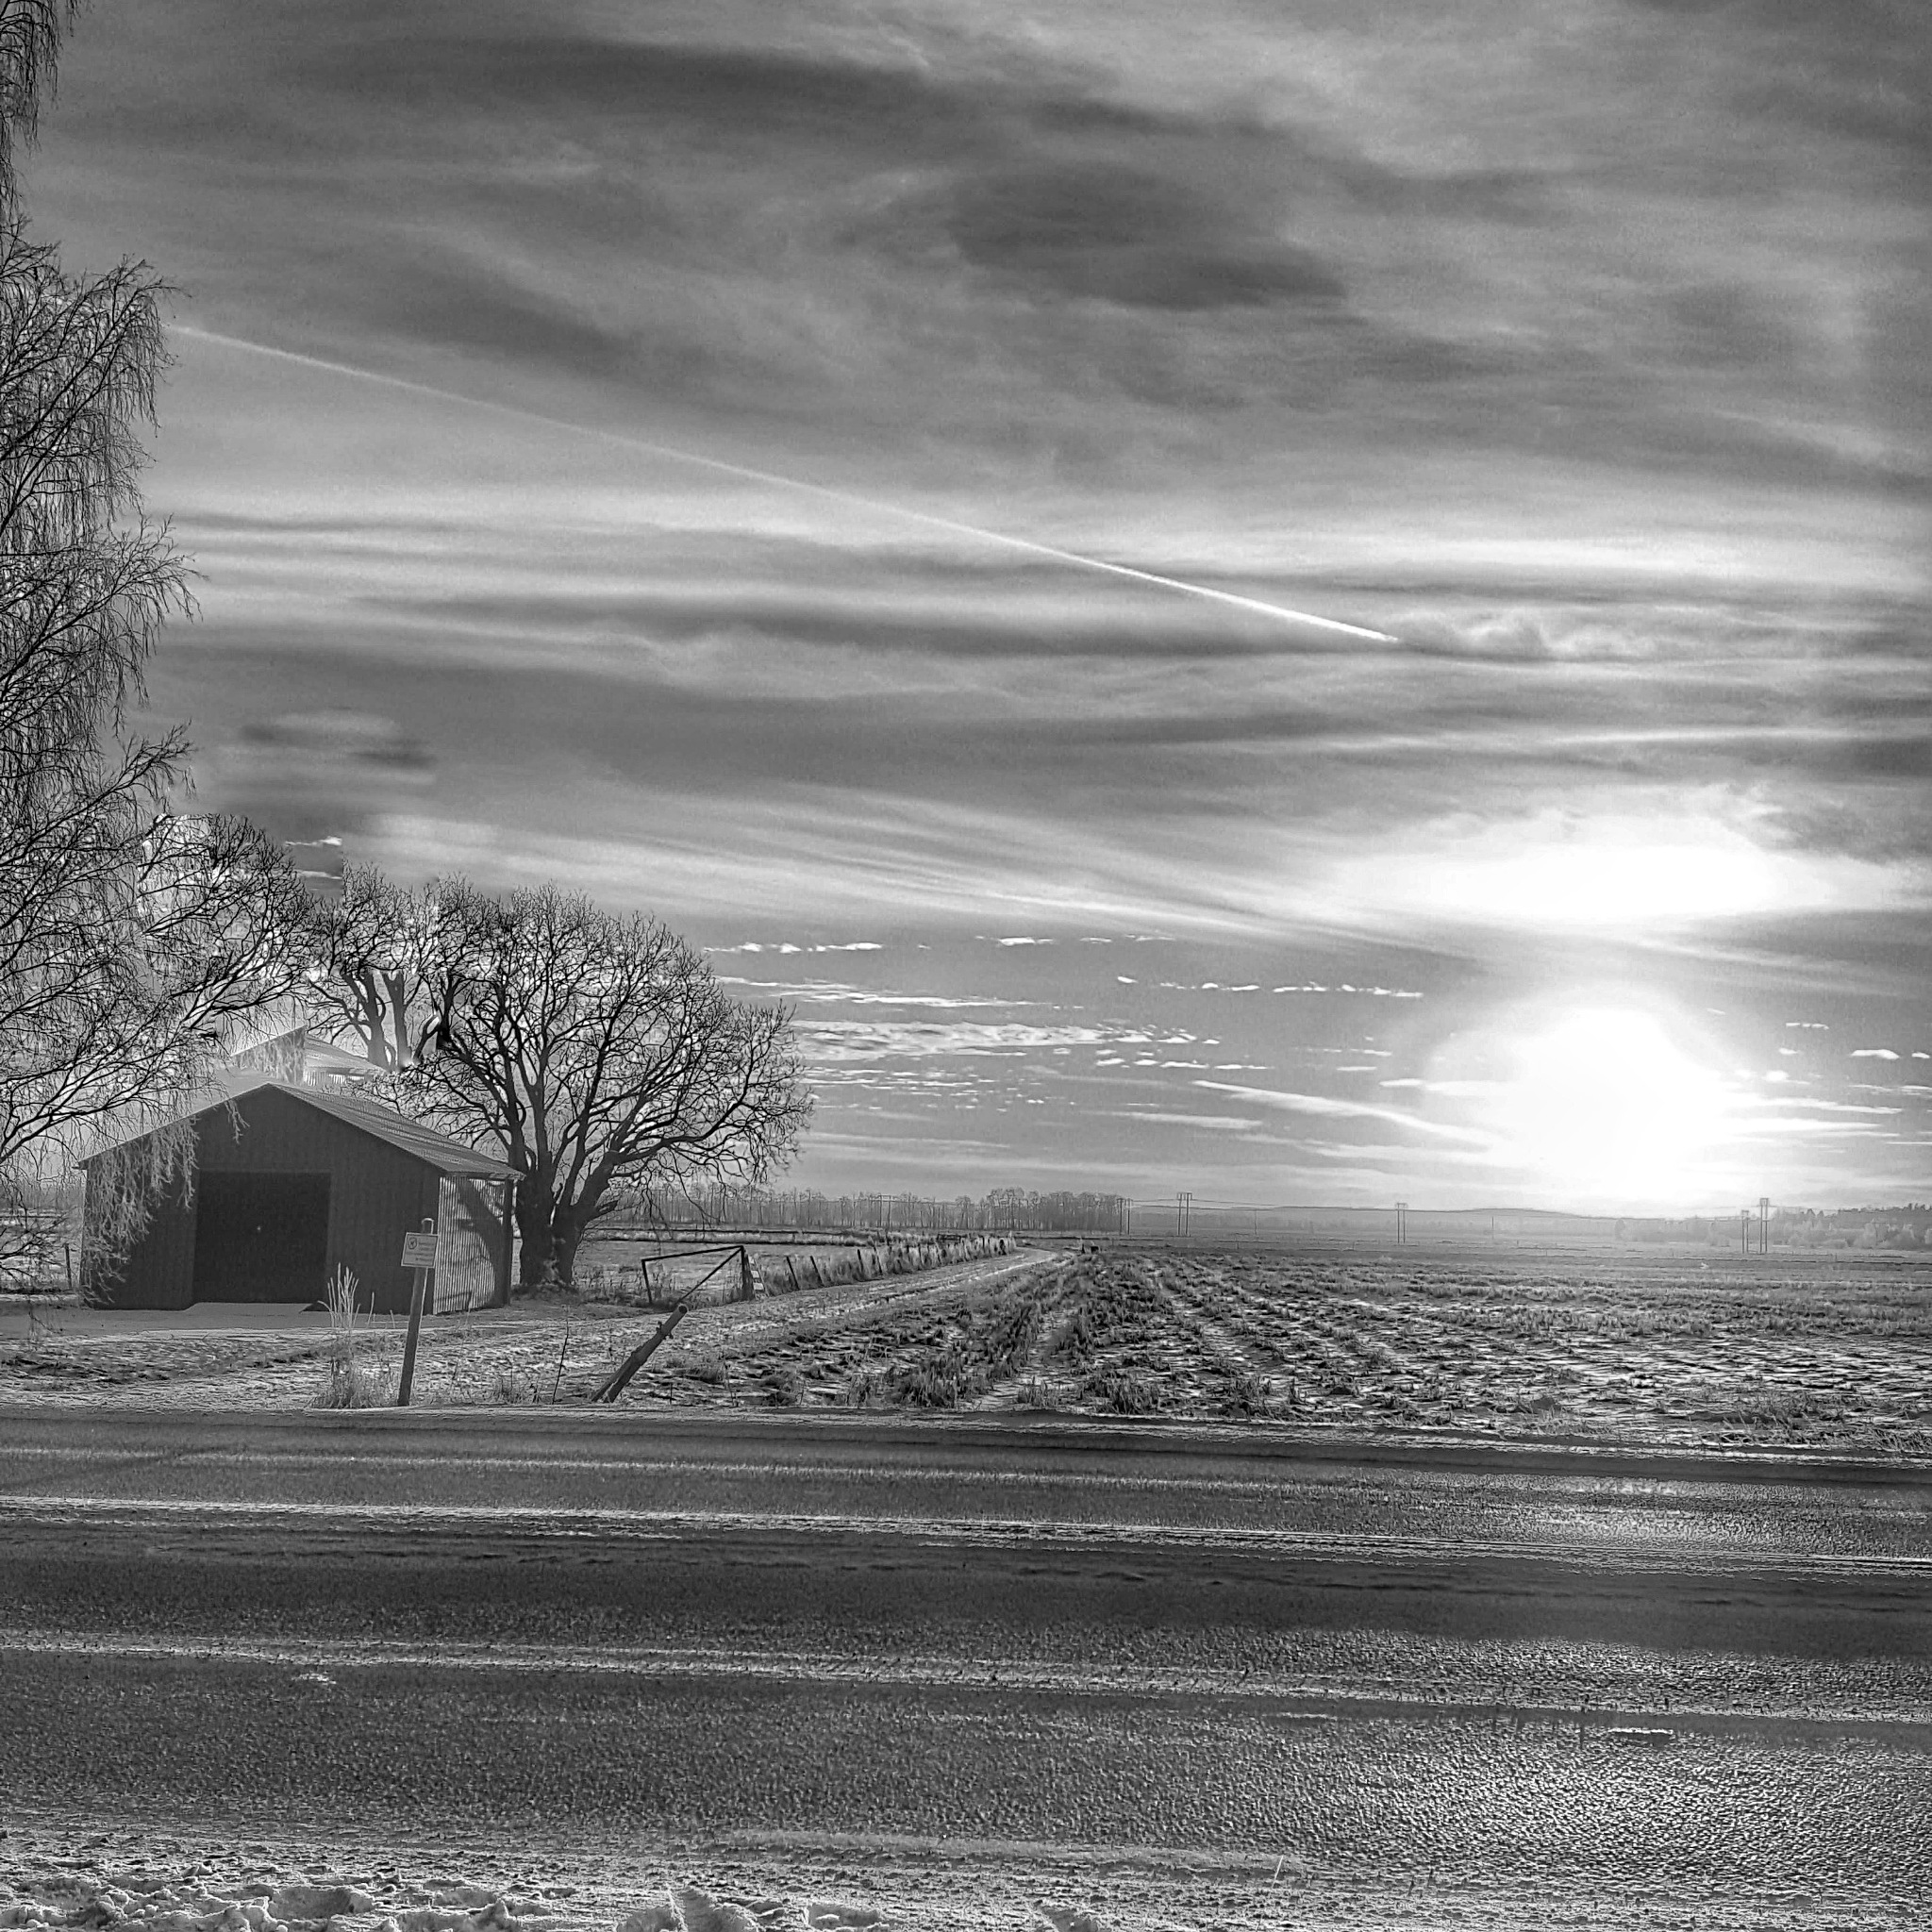 bw countryside  by Pelle Westberg